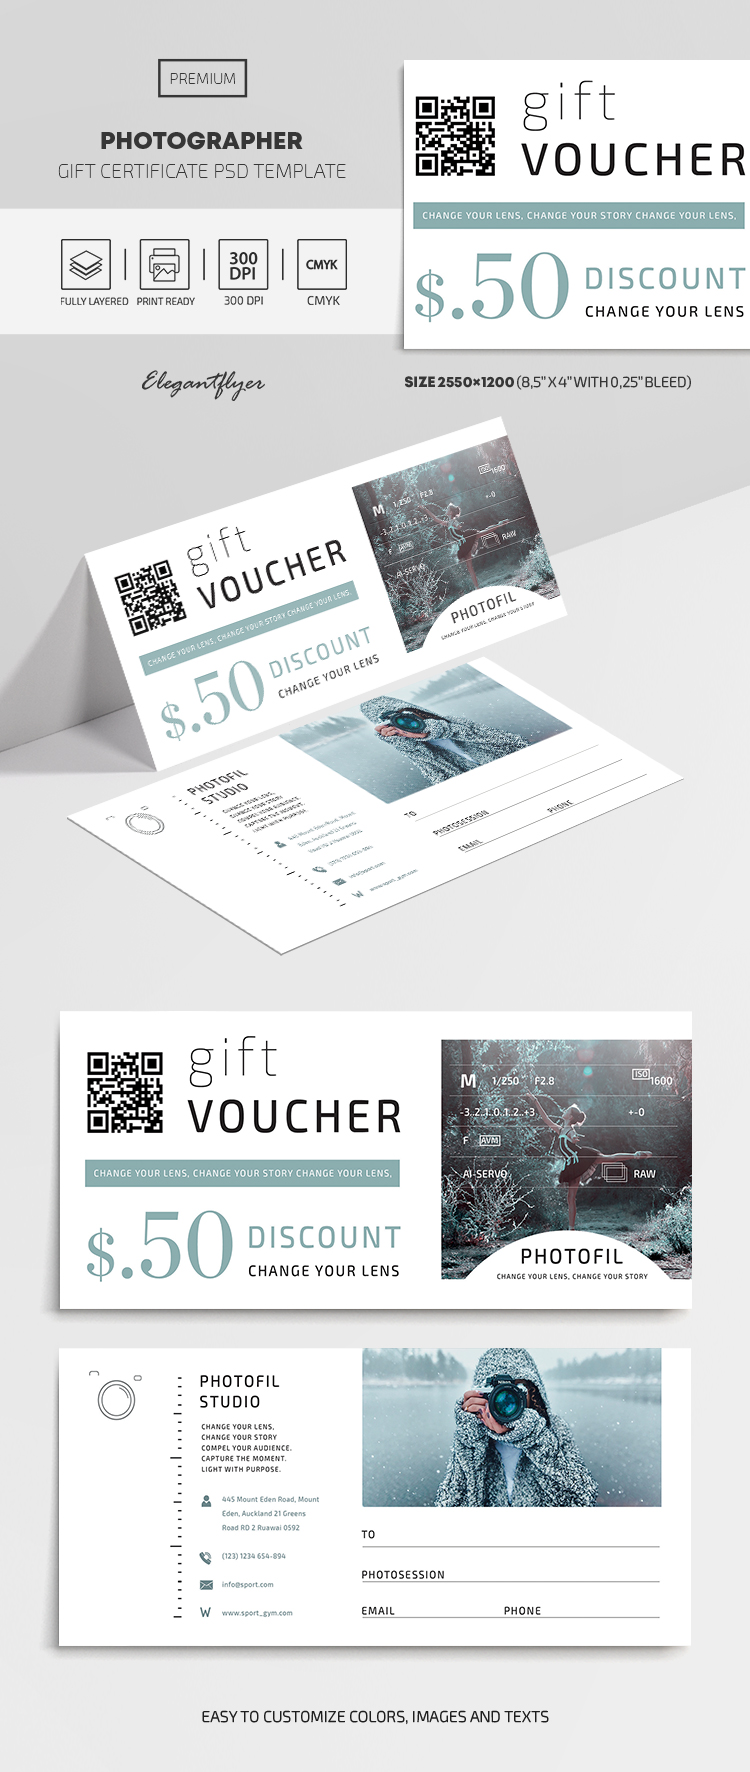 Photographer Premium Gift Certificate Template in PSD